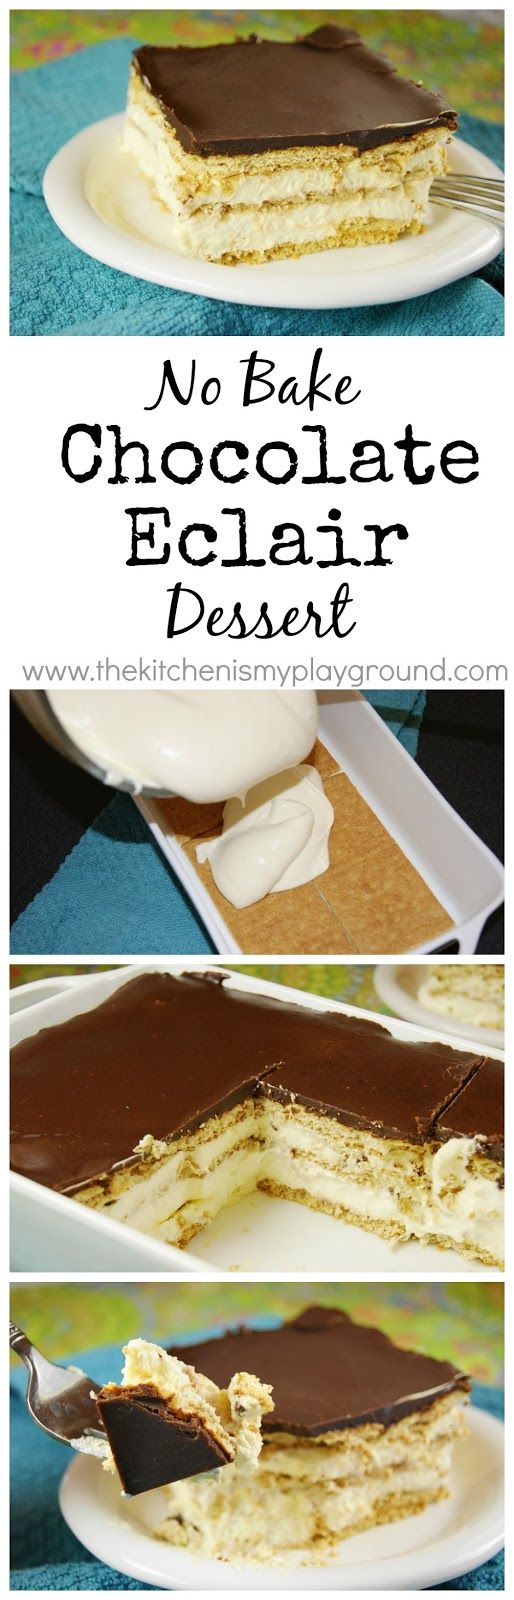 The Kitchen is My Playground: No-Bake Chocolate Eclair Dessert